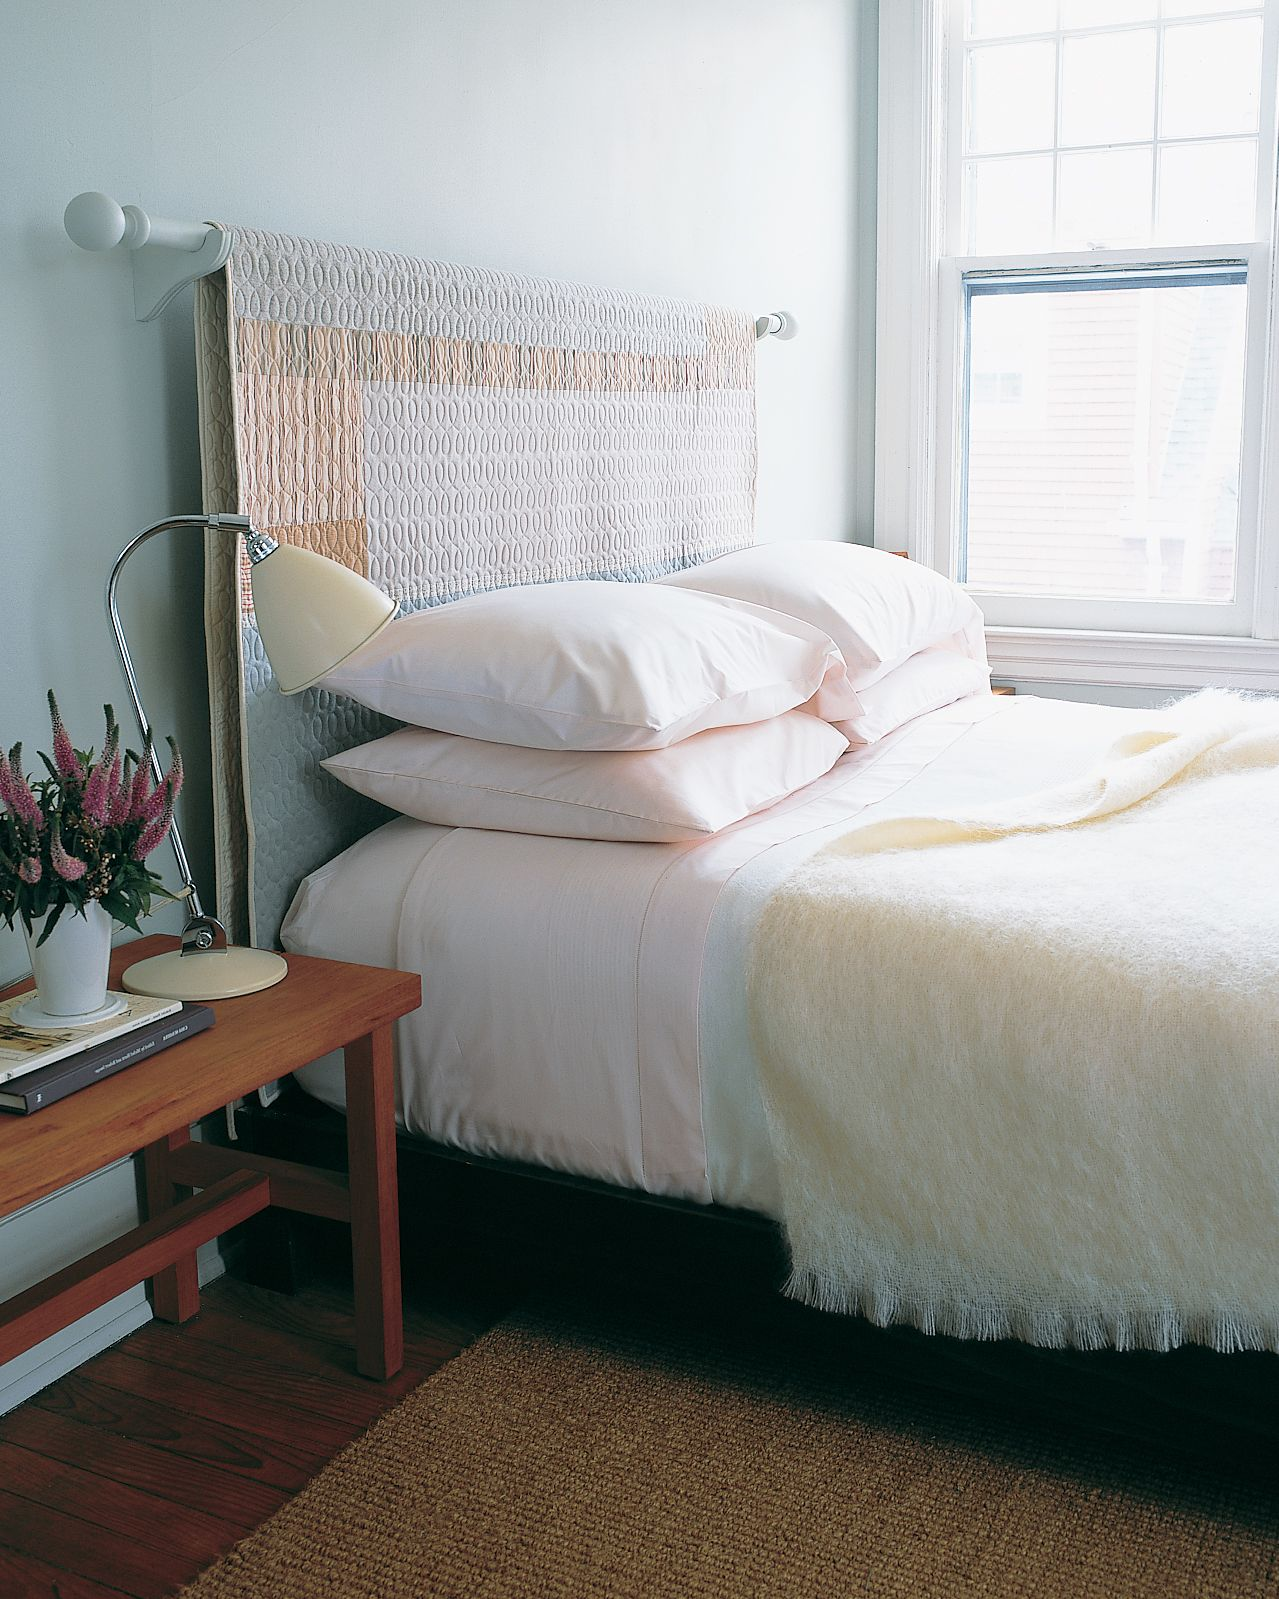 11 Diy Headboard Ideas To Give Your Bed A Boost Bedroom